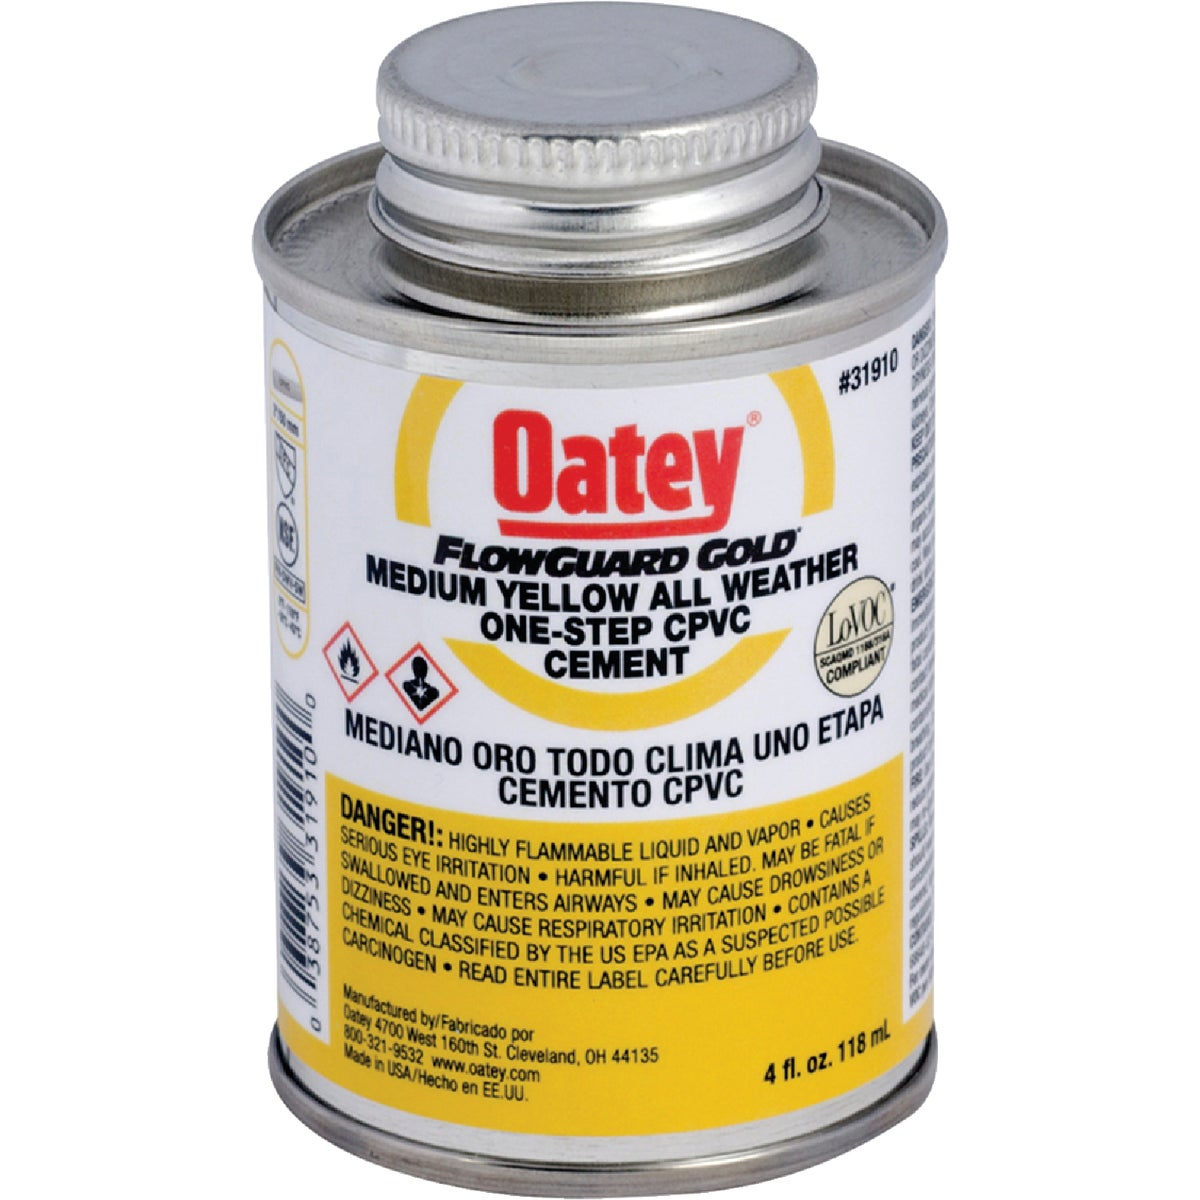 1/4PINT F/G CPVC CEMENT - 31910 by Oatey Scs